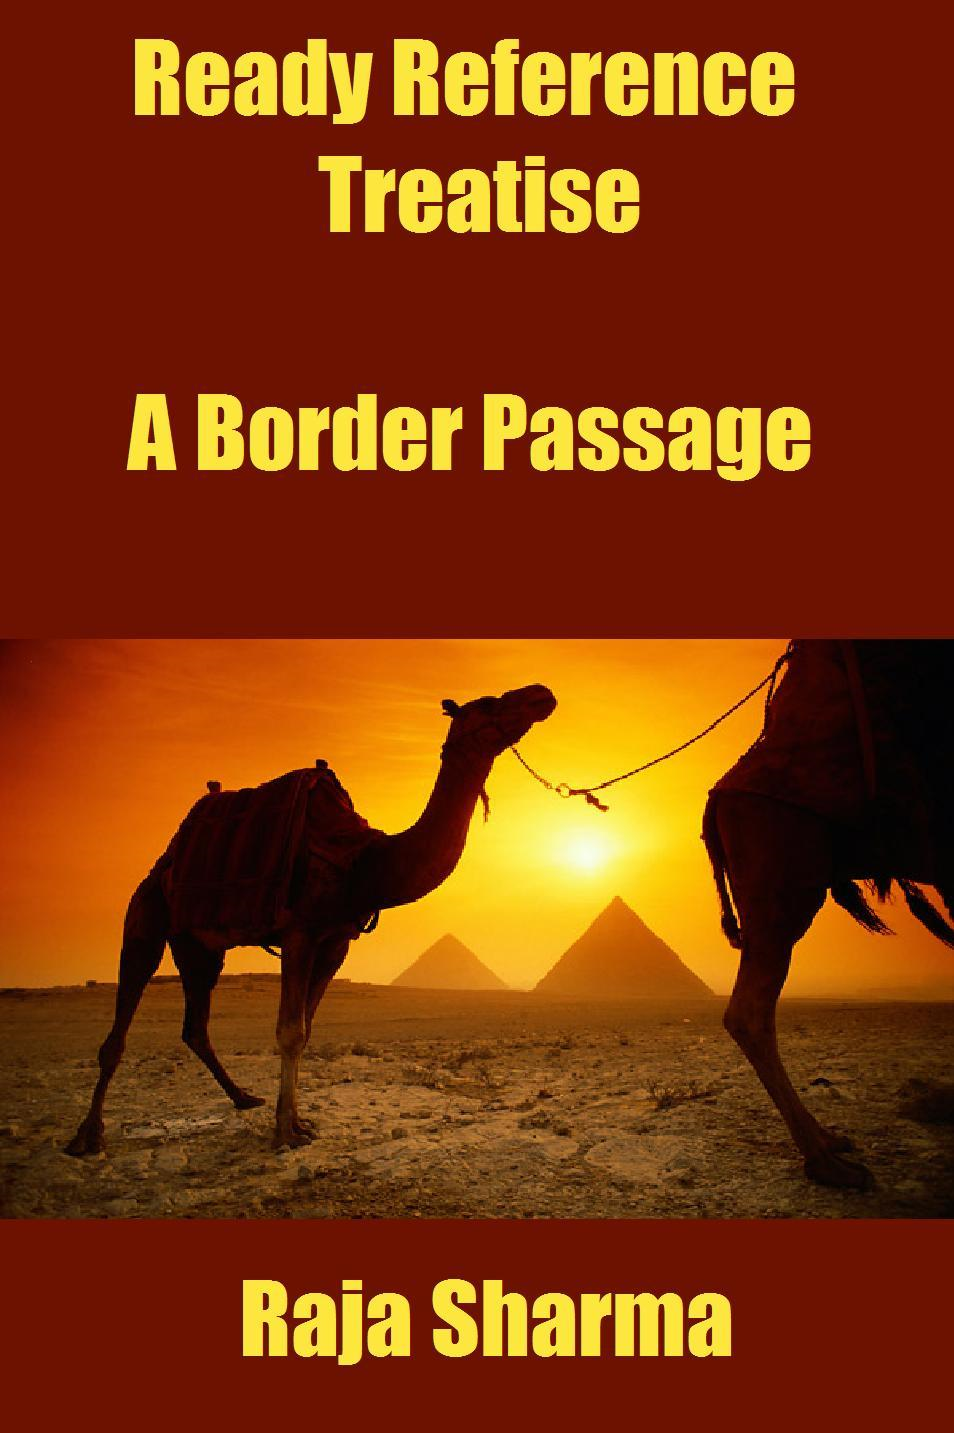 Ready Reference Treatise: A Border Passage